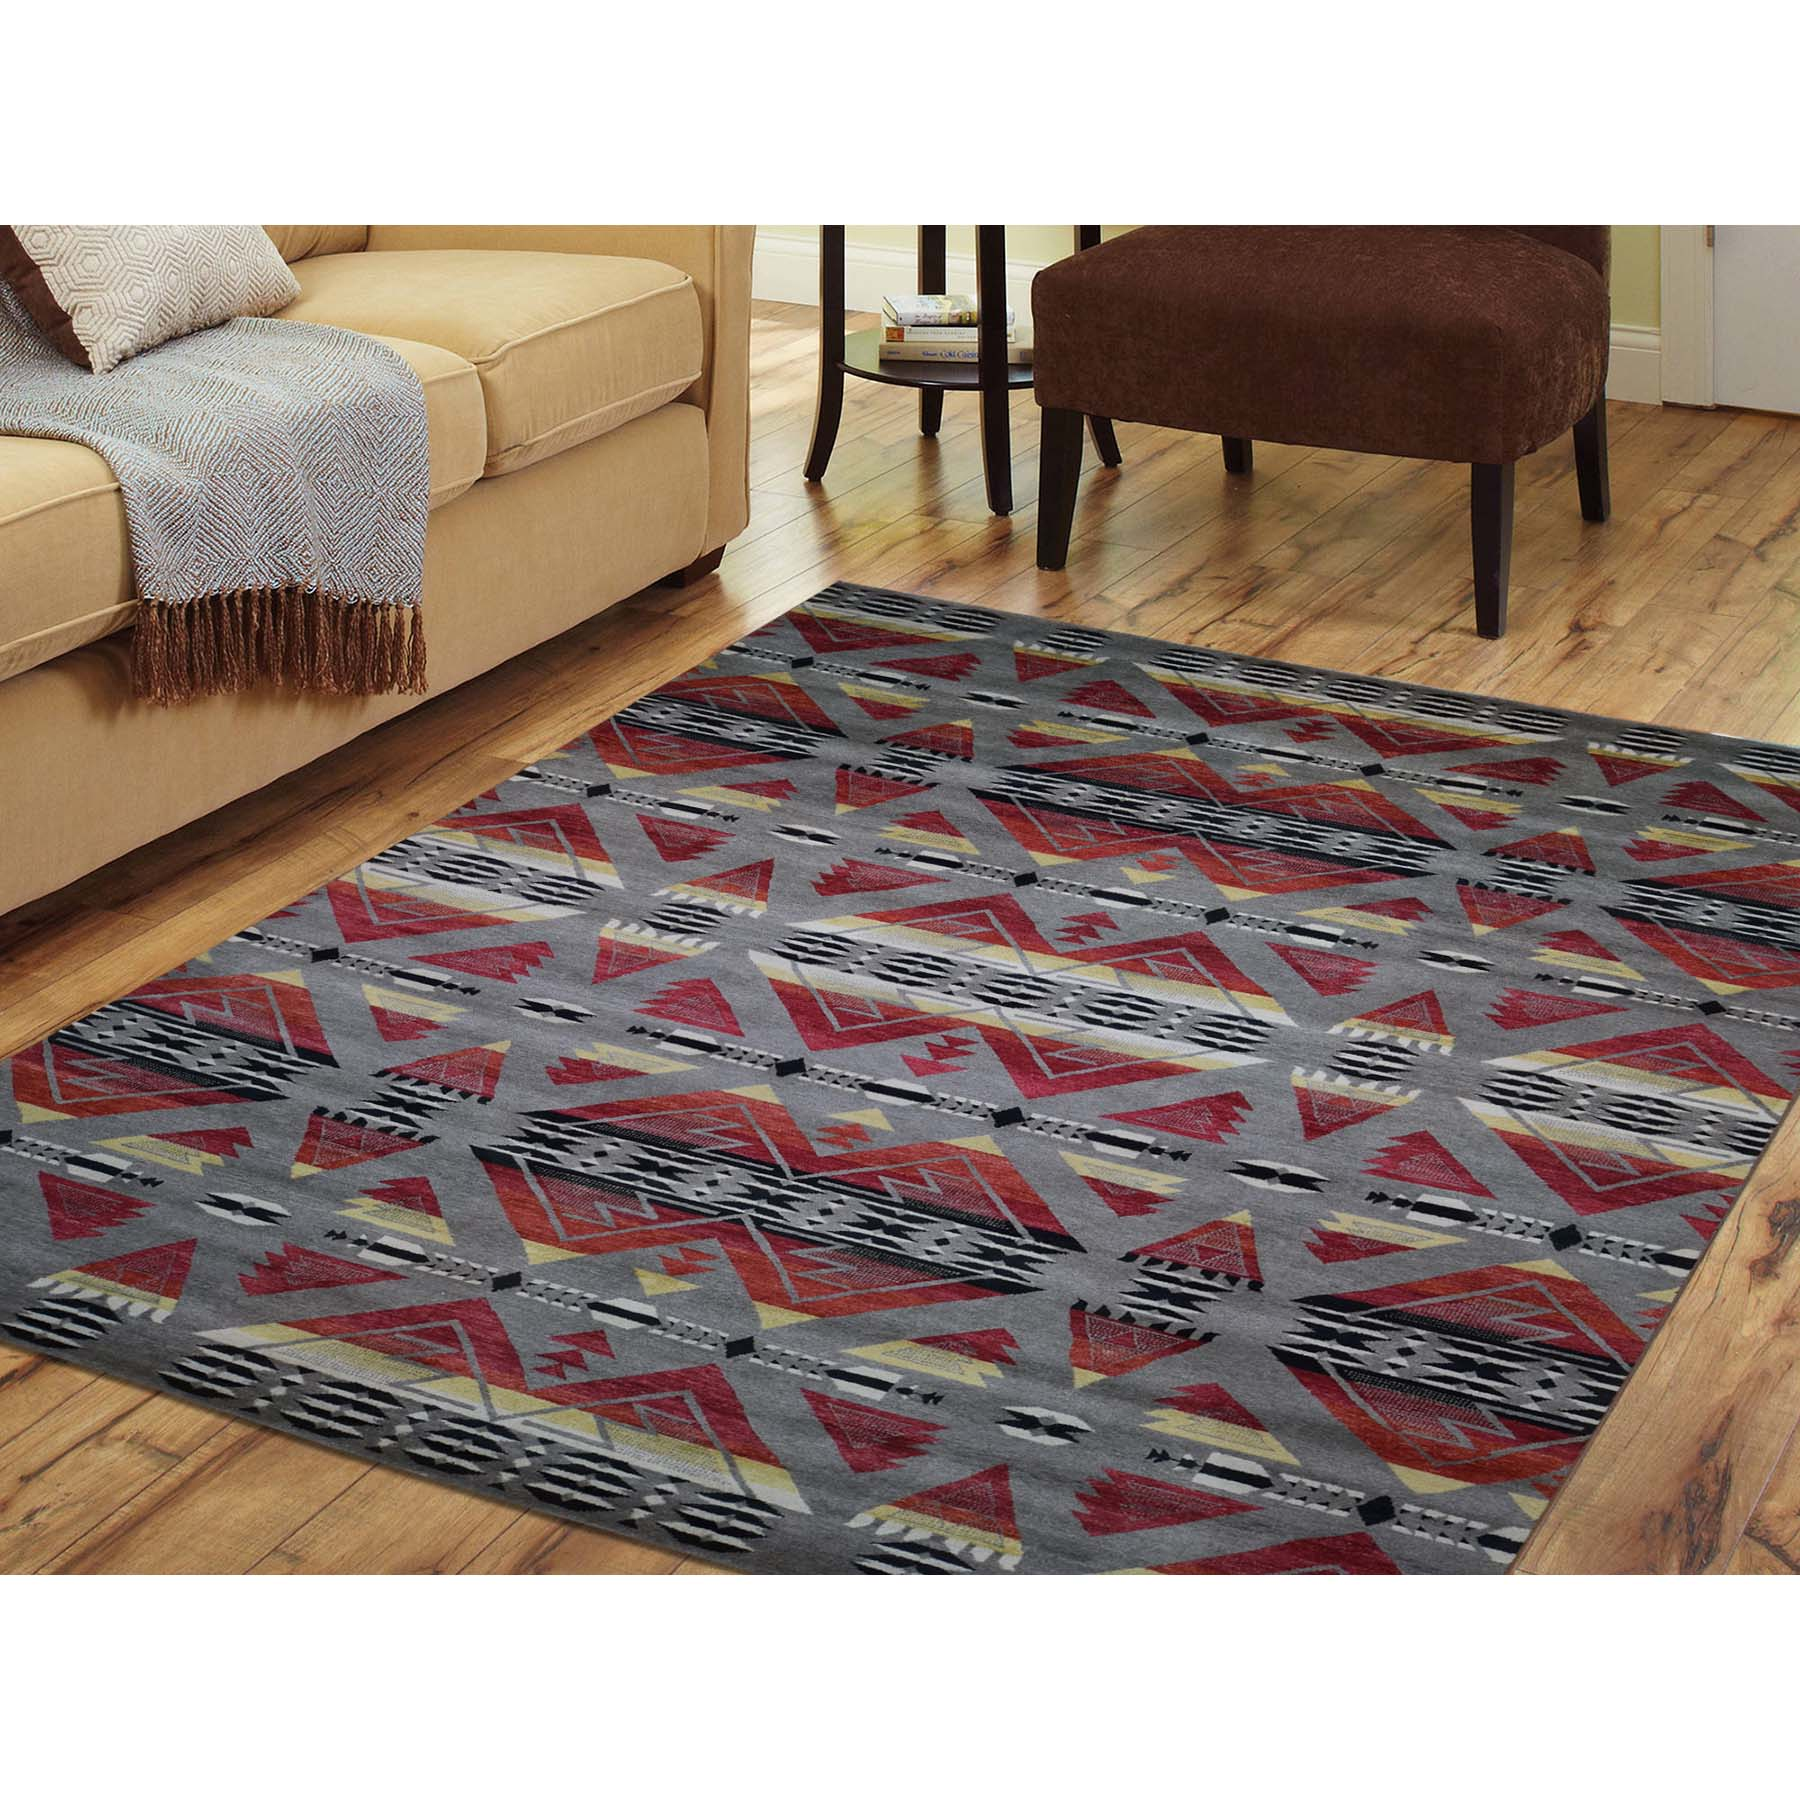 8-10 x11-7  Hand-Knotted Pure Wool Southwestern Design Oriental Rug